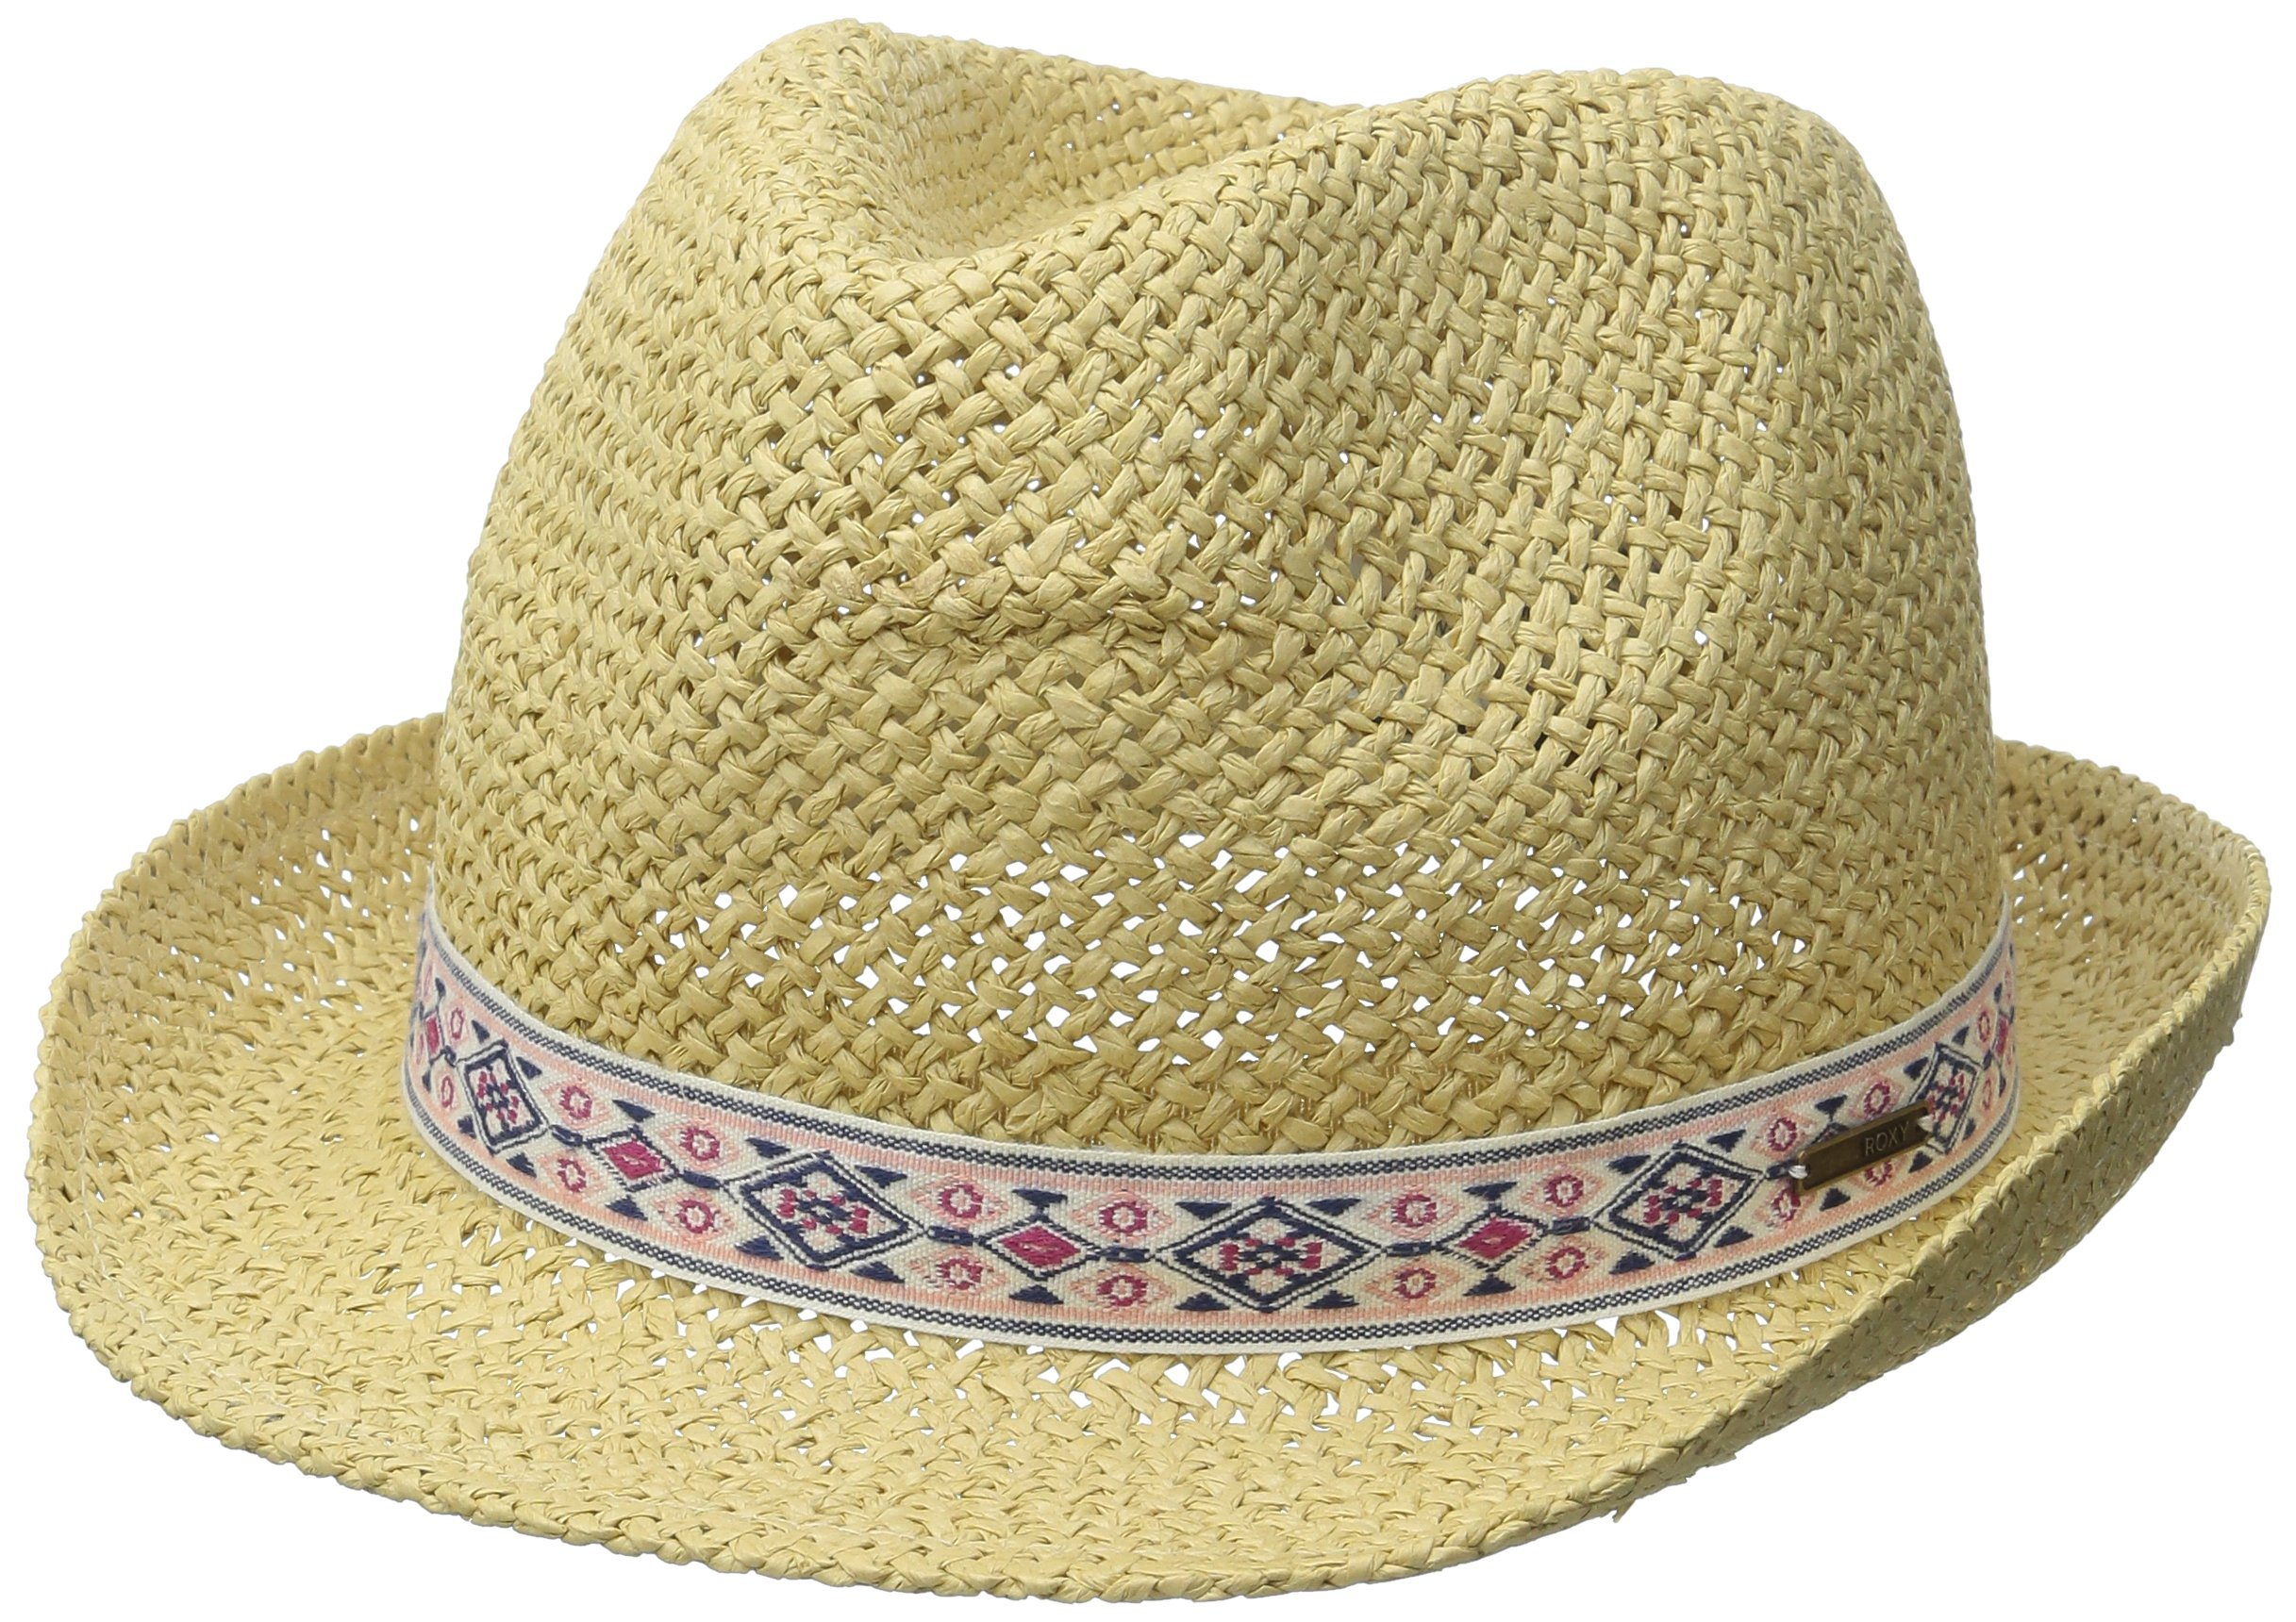 Roxy Junior's Bring Roses Hat, Natural, Small/Medium by Roxy